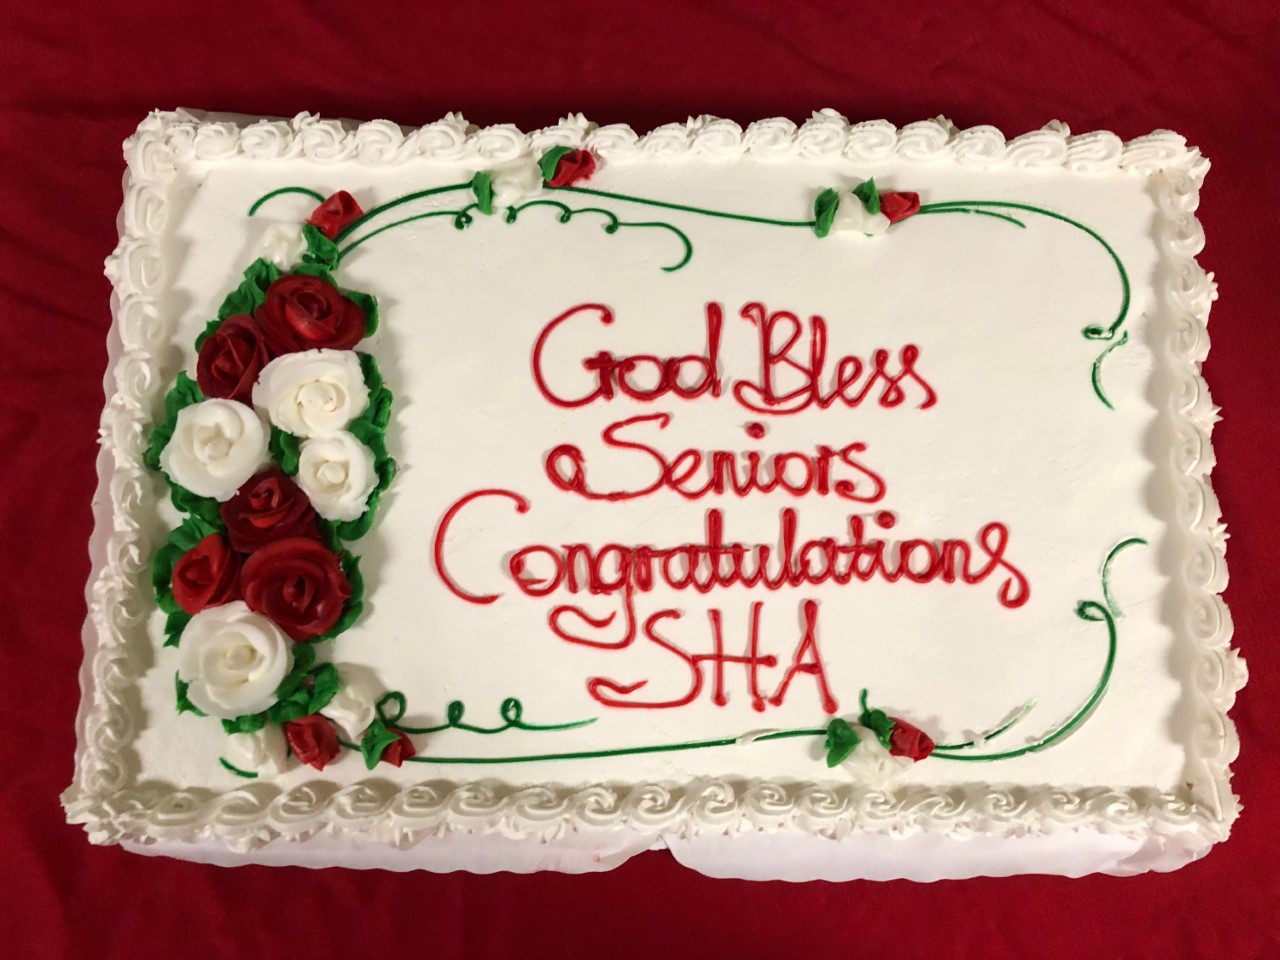 Cake+served+to+the+graduating+Class+of+2019+at+Baccalaureate+Mass.+